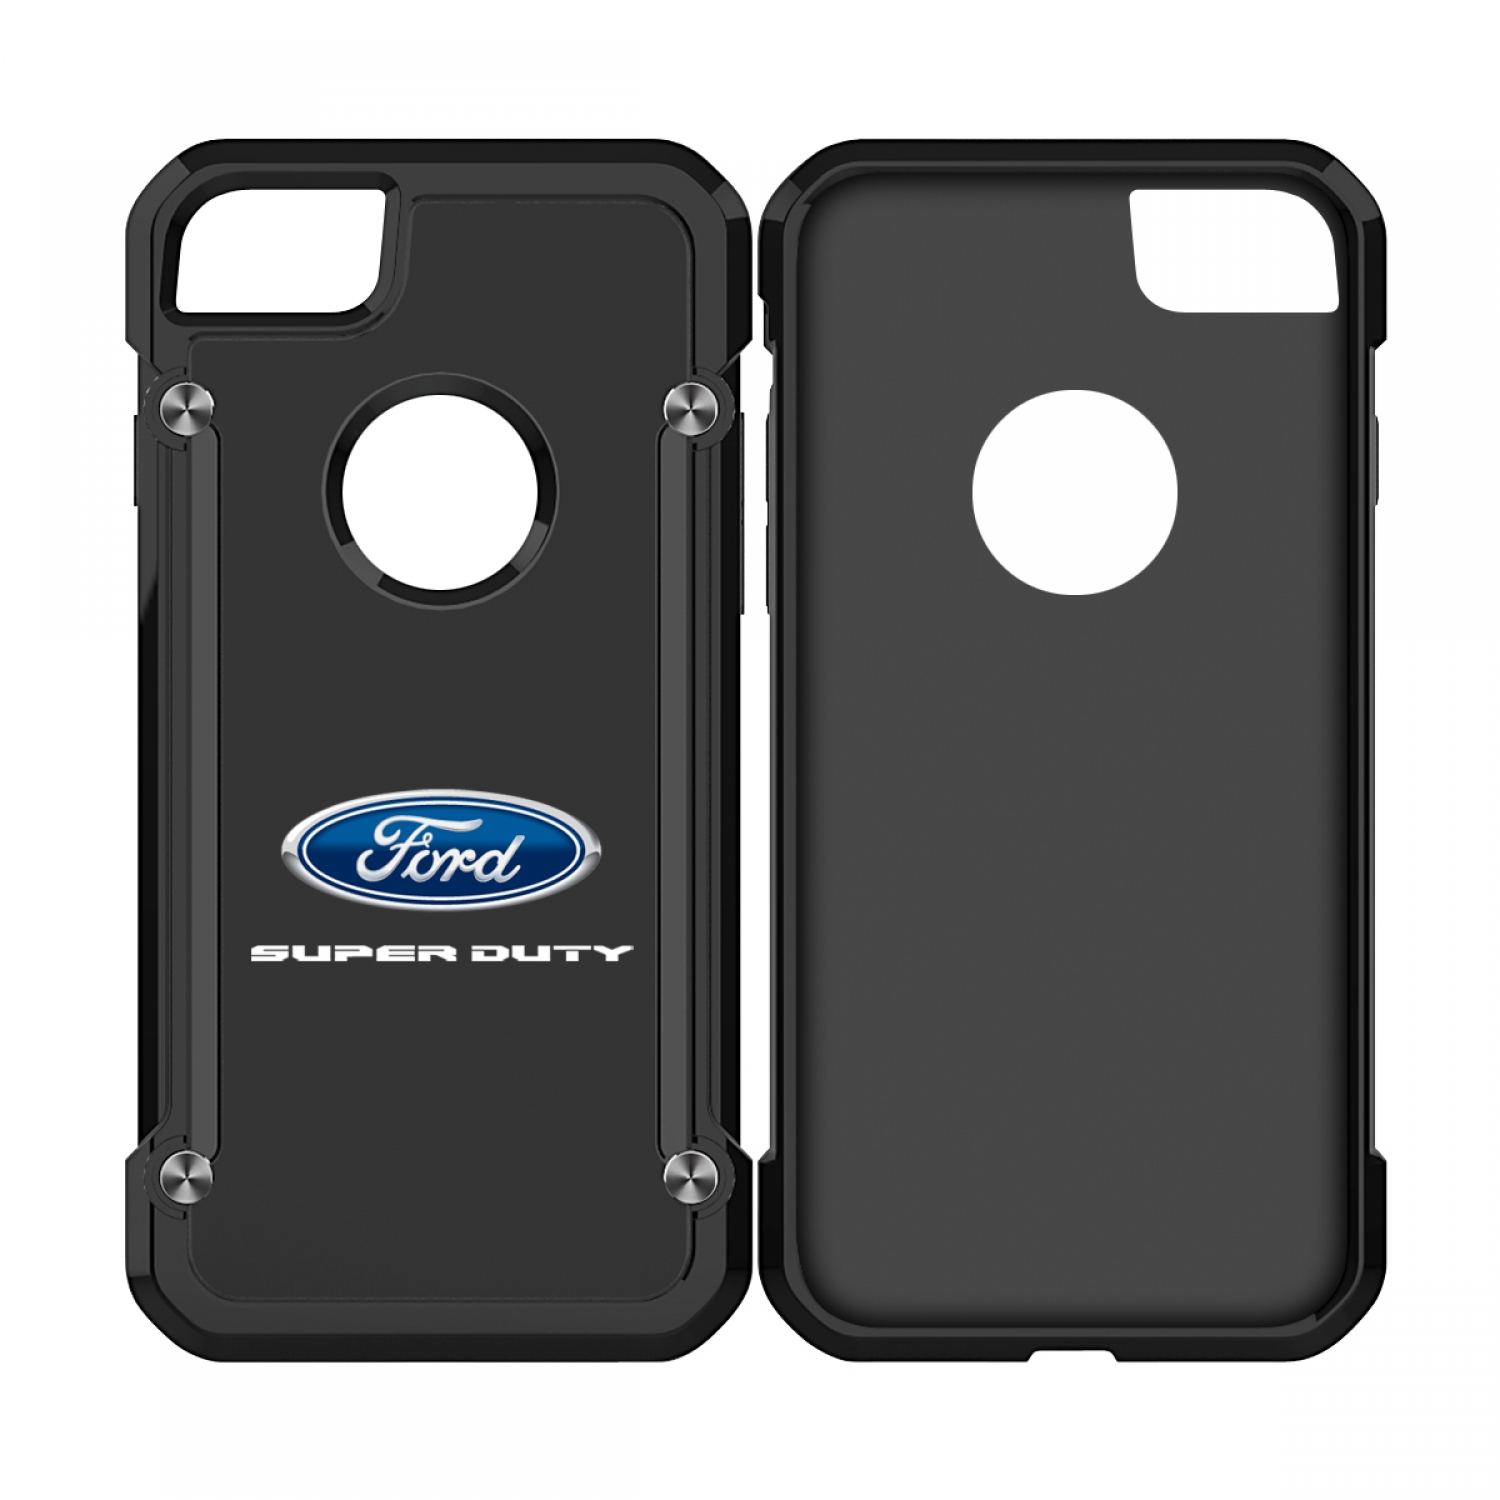 Ford Super Duty iPhone 7 iPhone 8 TPU Shockproof Clear Cell Phone Case